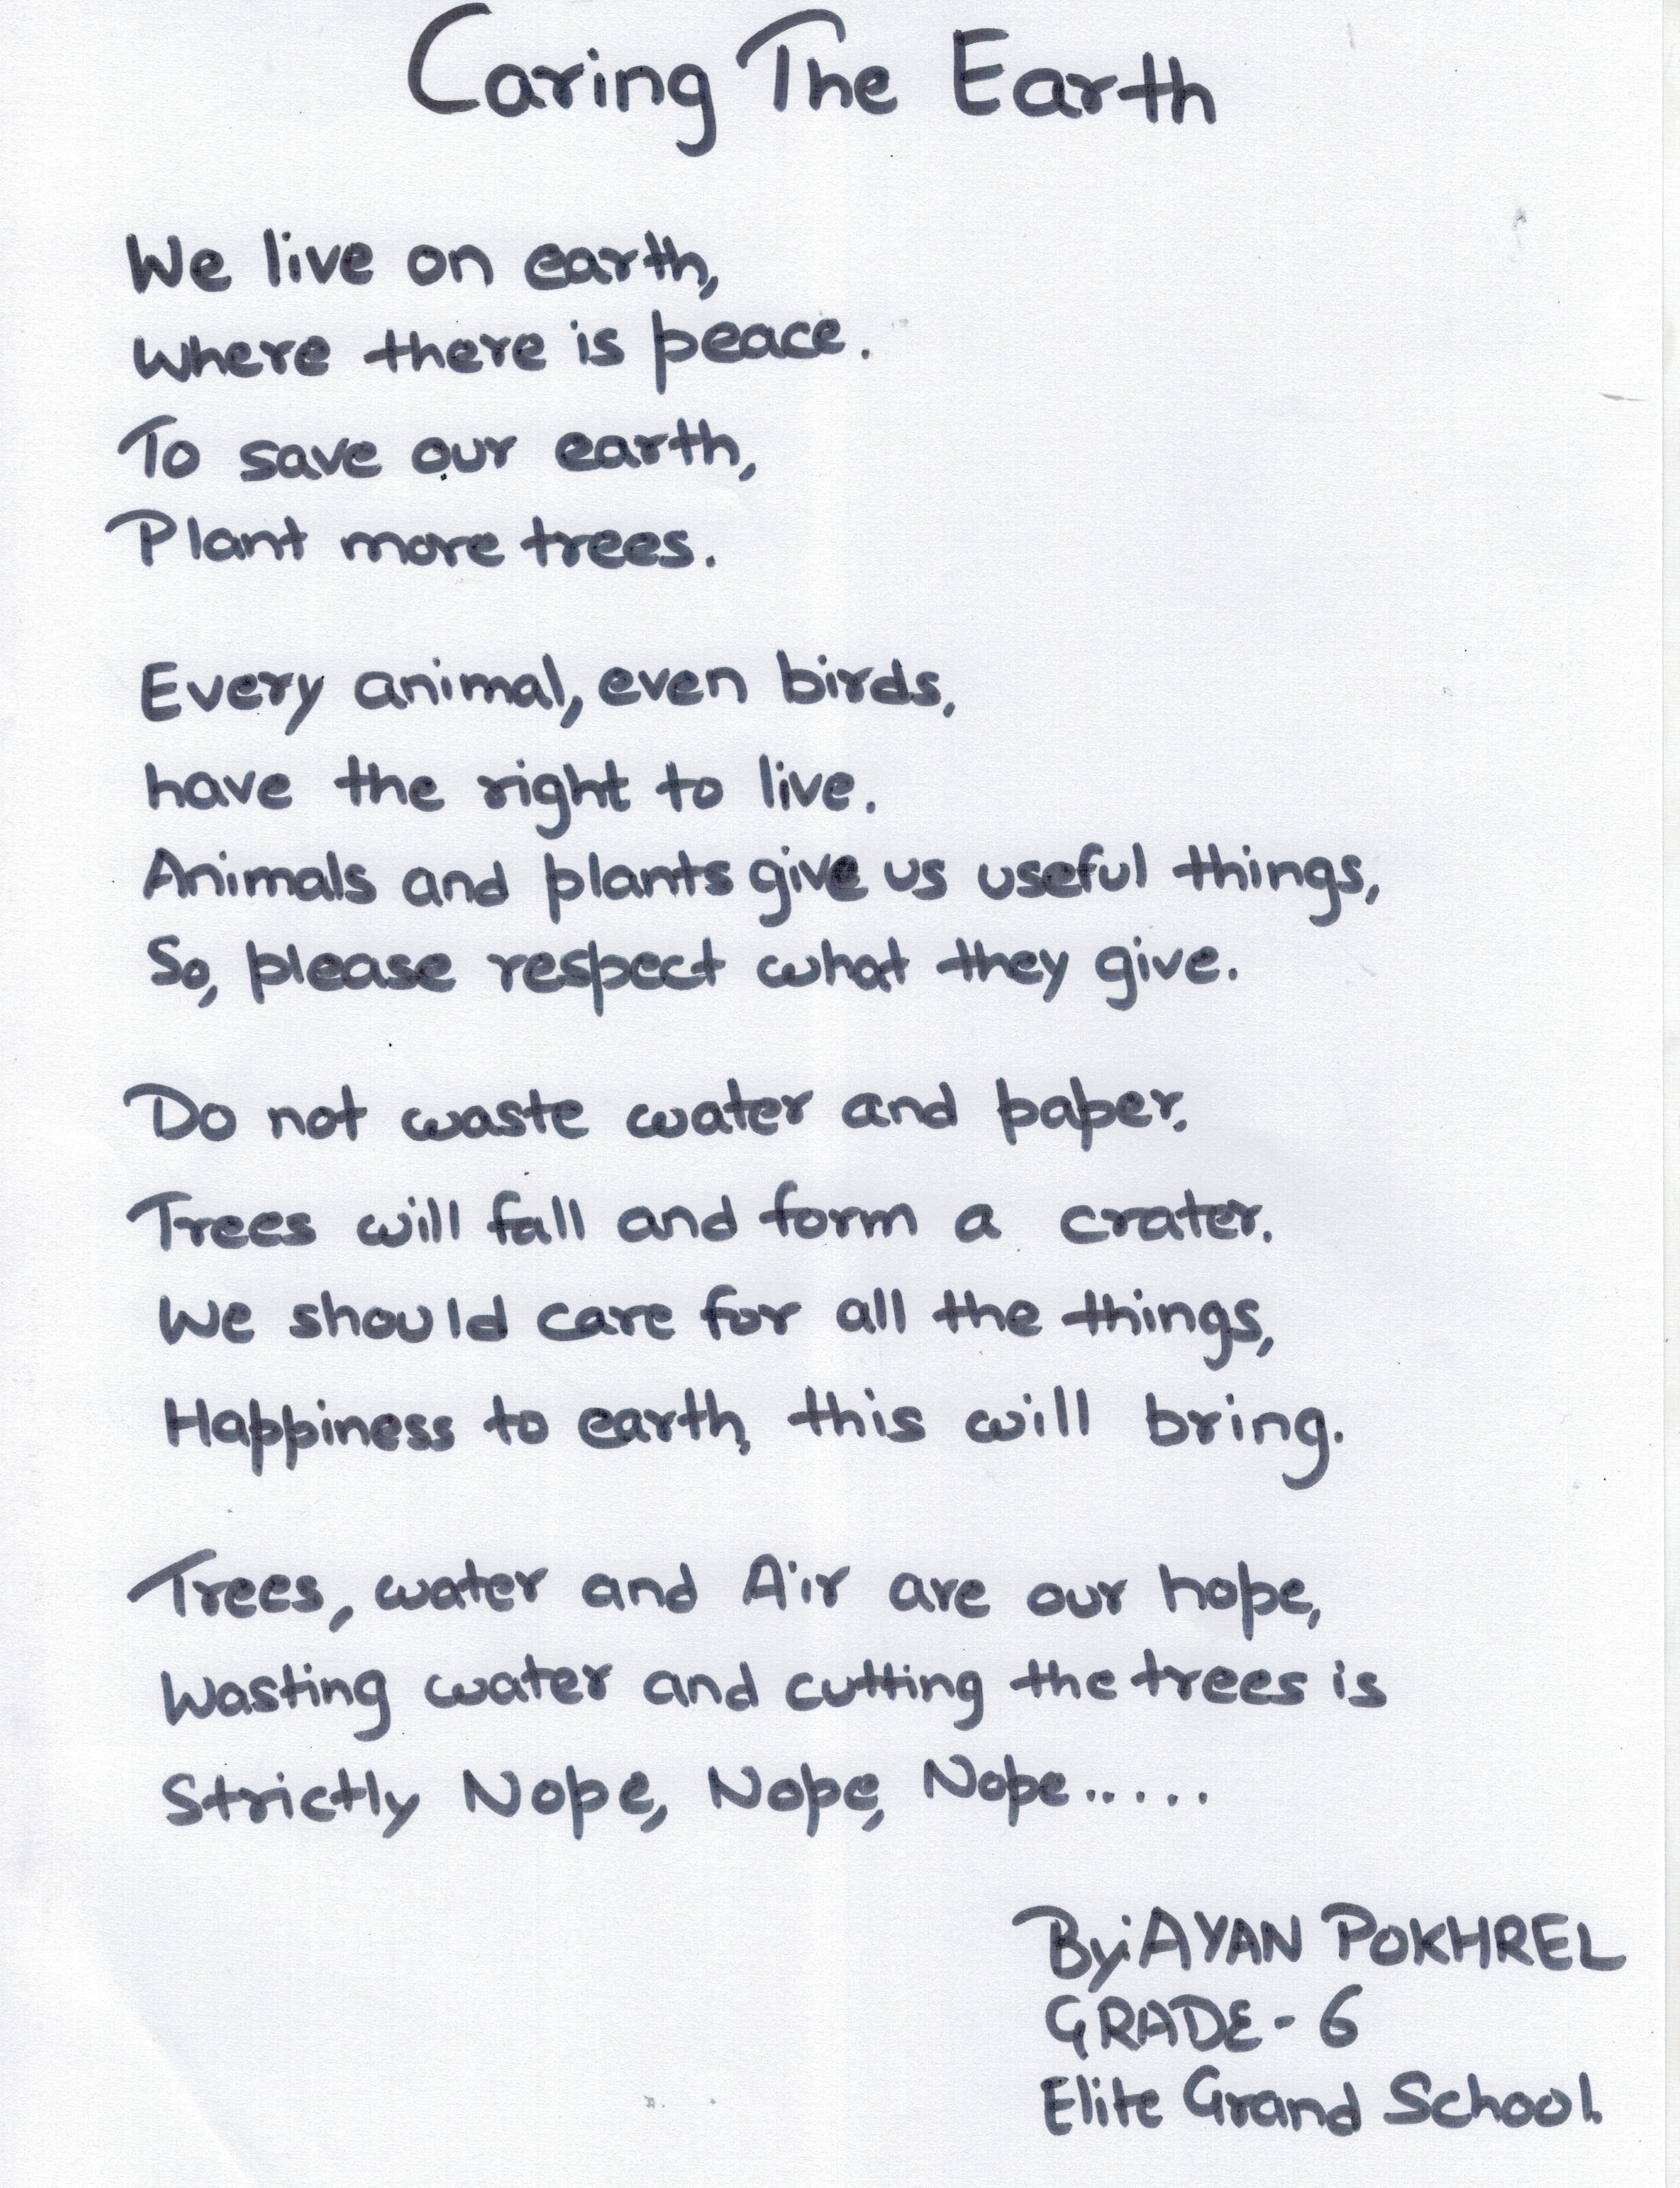 CARING THE EARTH